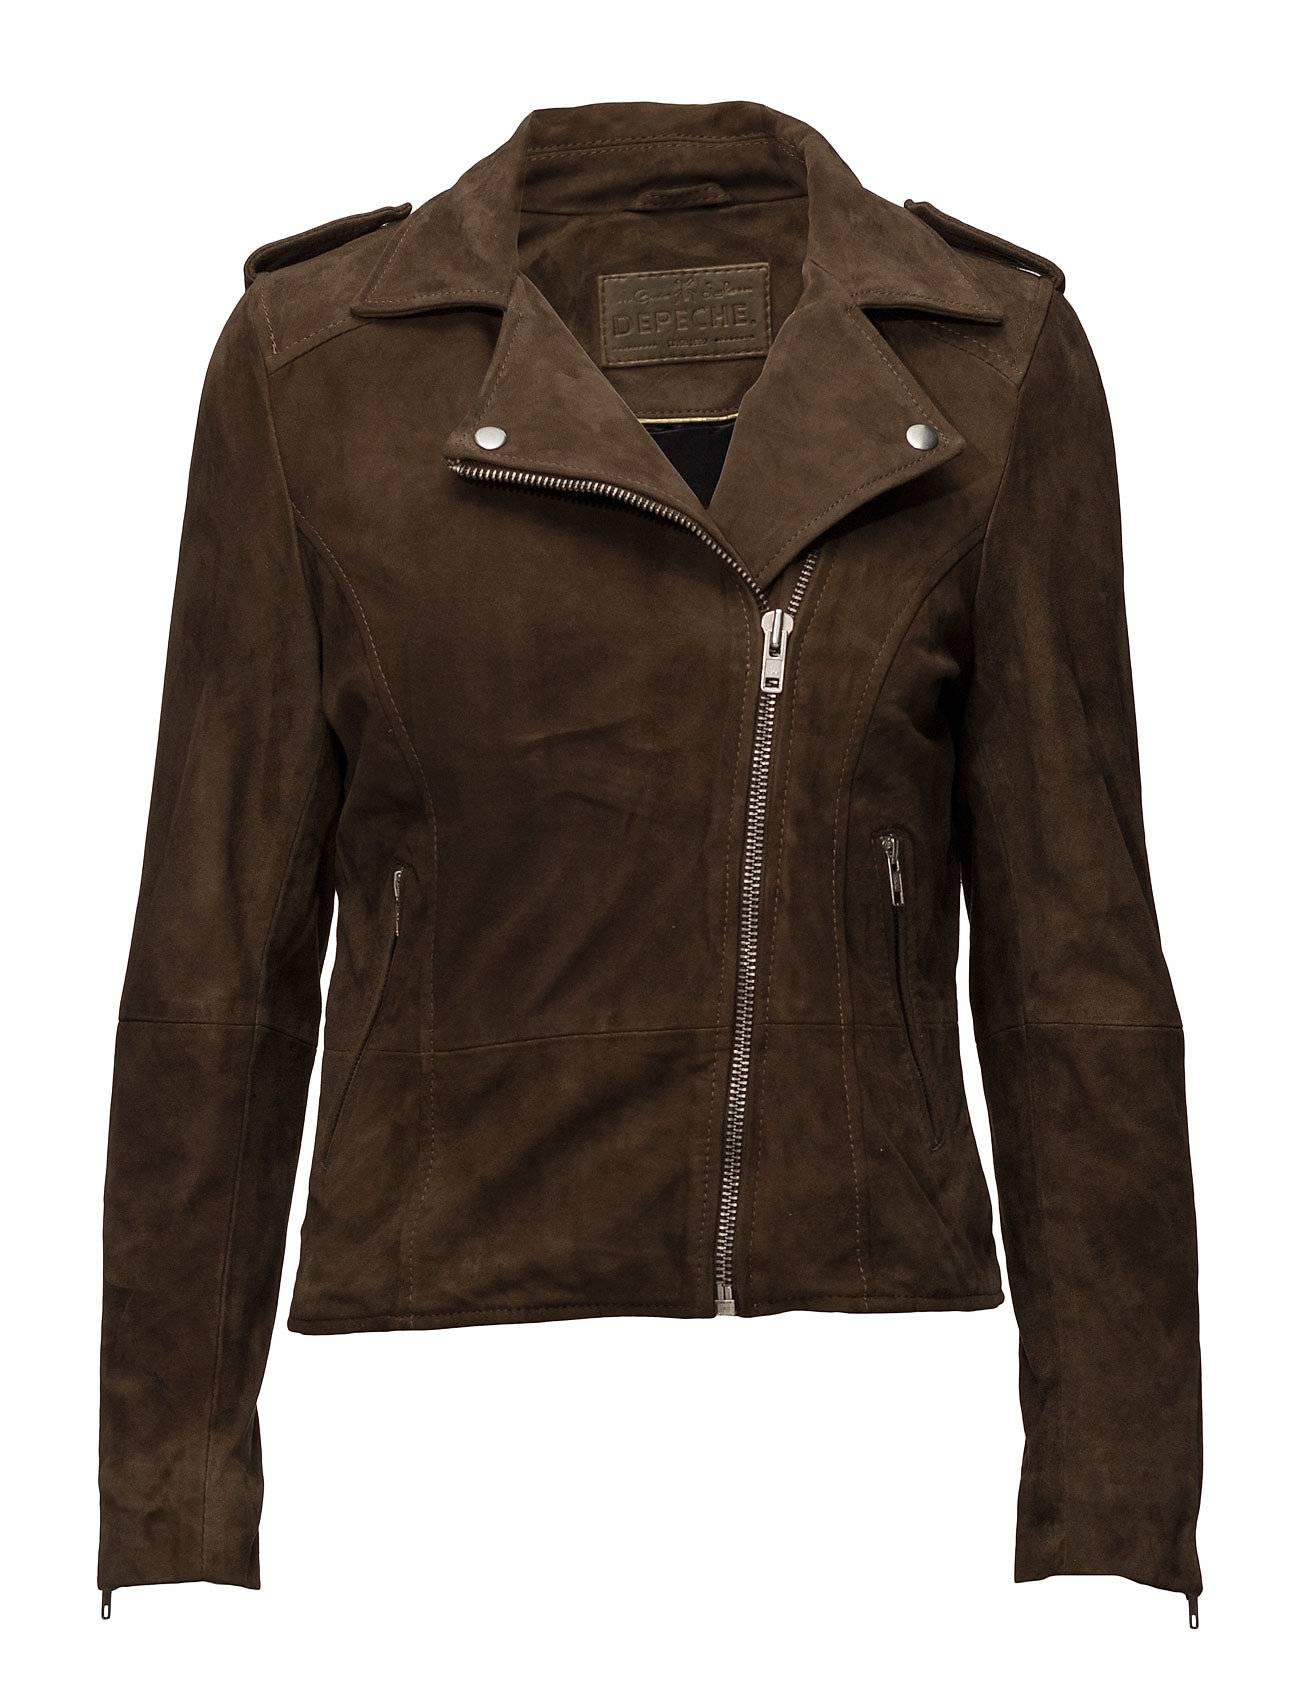 DEPECHE Biker Jacket In Suede